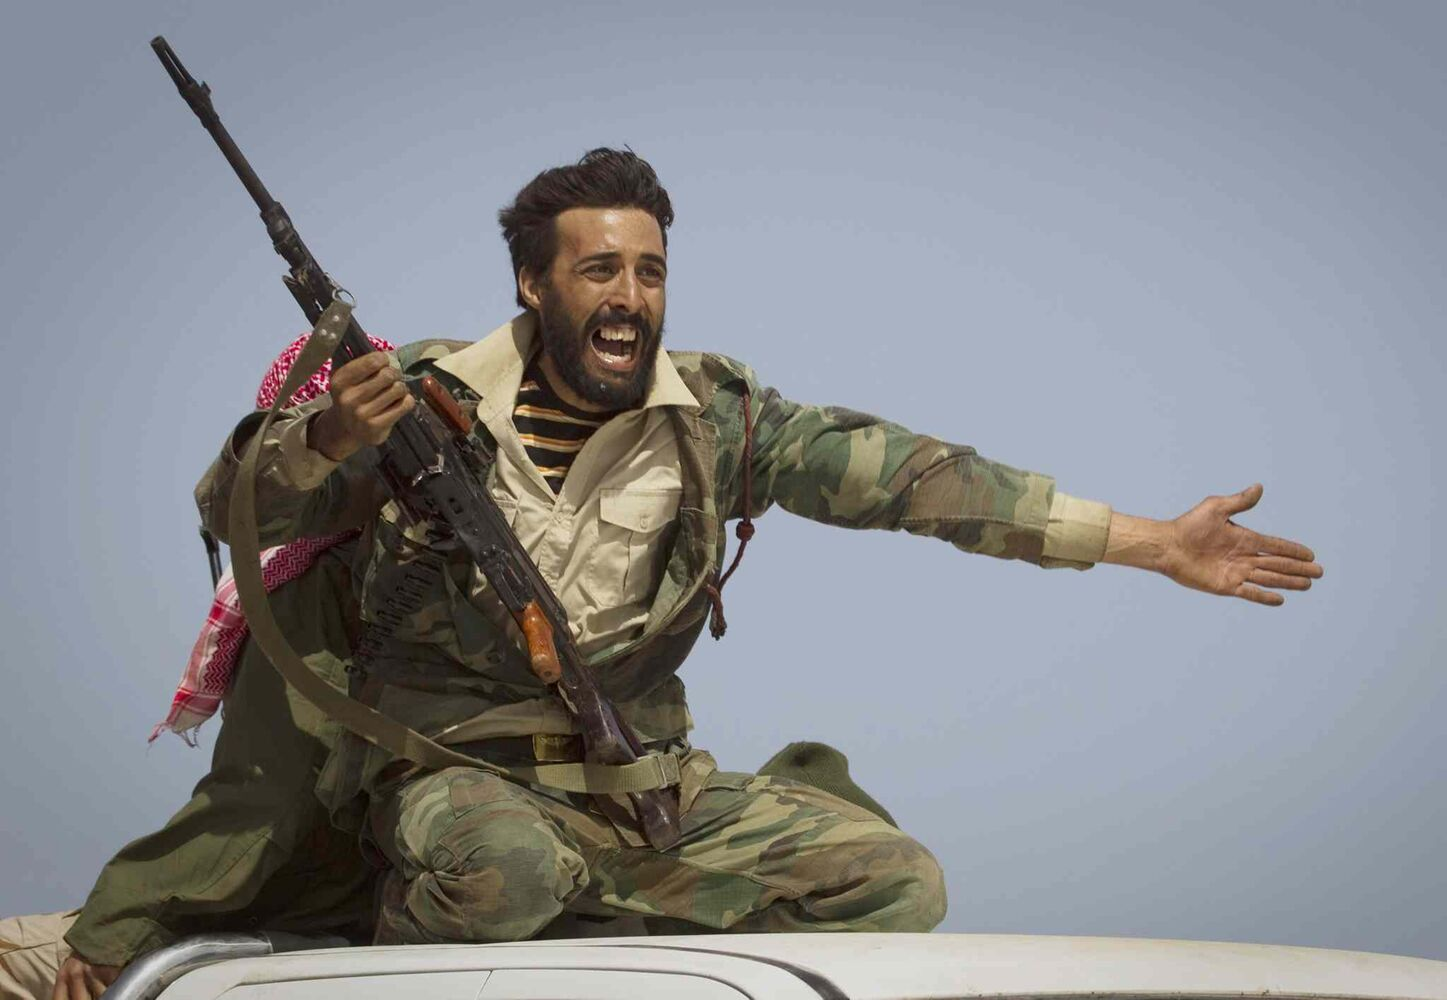 March 29, 2011: A Libyan rebel urges people to leave as shelling from Gadhafi's forces started landing on the frontline outside of Bin Jawaad, 150 kilometers (93 miles) east of Sirte, central Libya. (Anja Niedringhaus / The Associated Press)